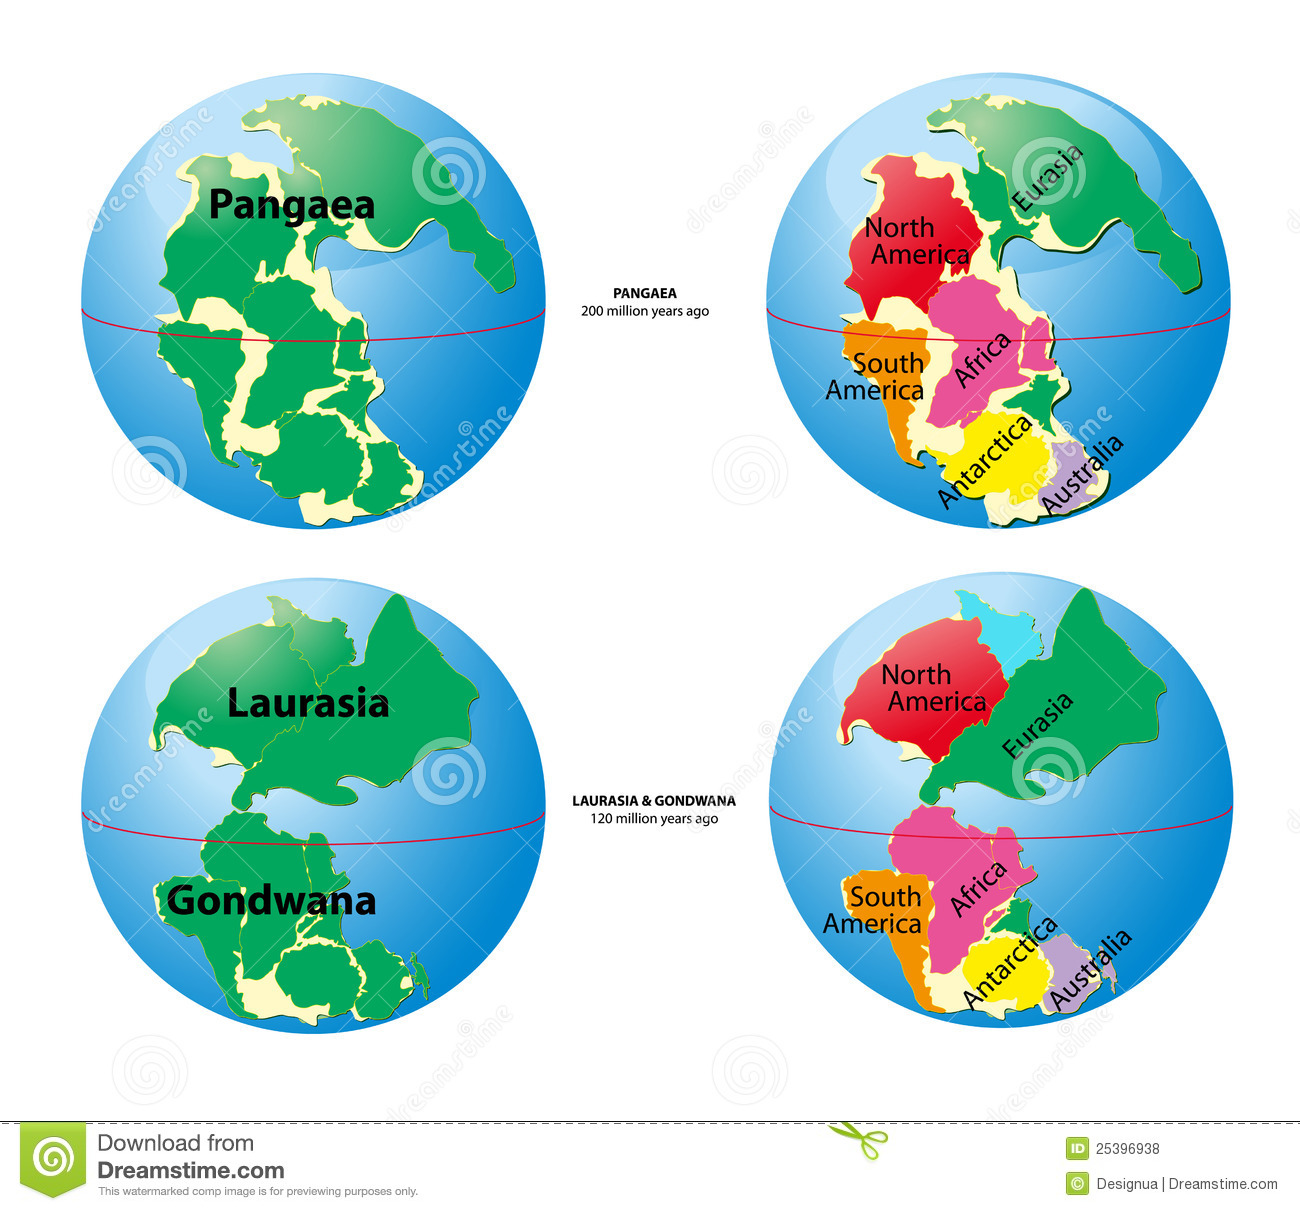 World map of Pangaea - 200 million years ago, Laurasia, Gondwana - 120 ...